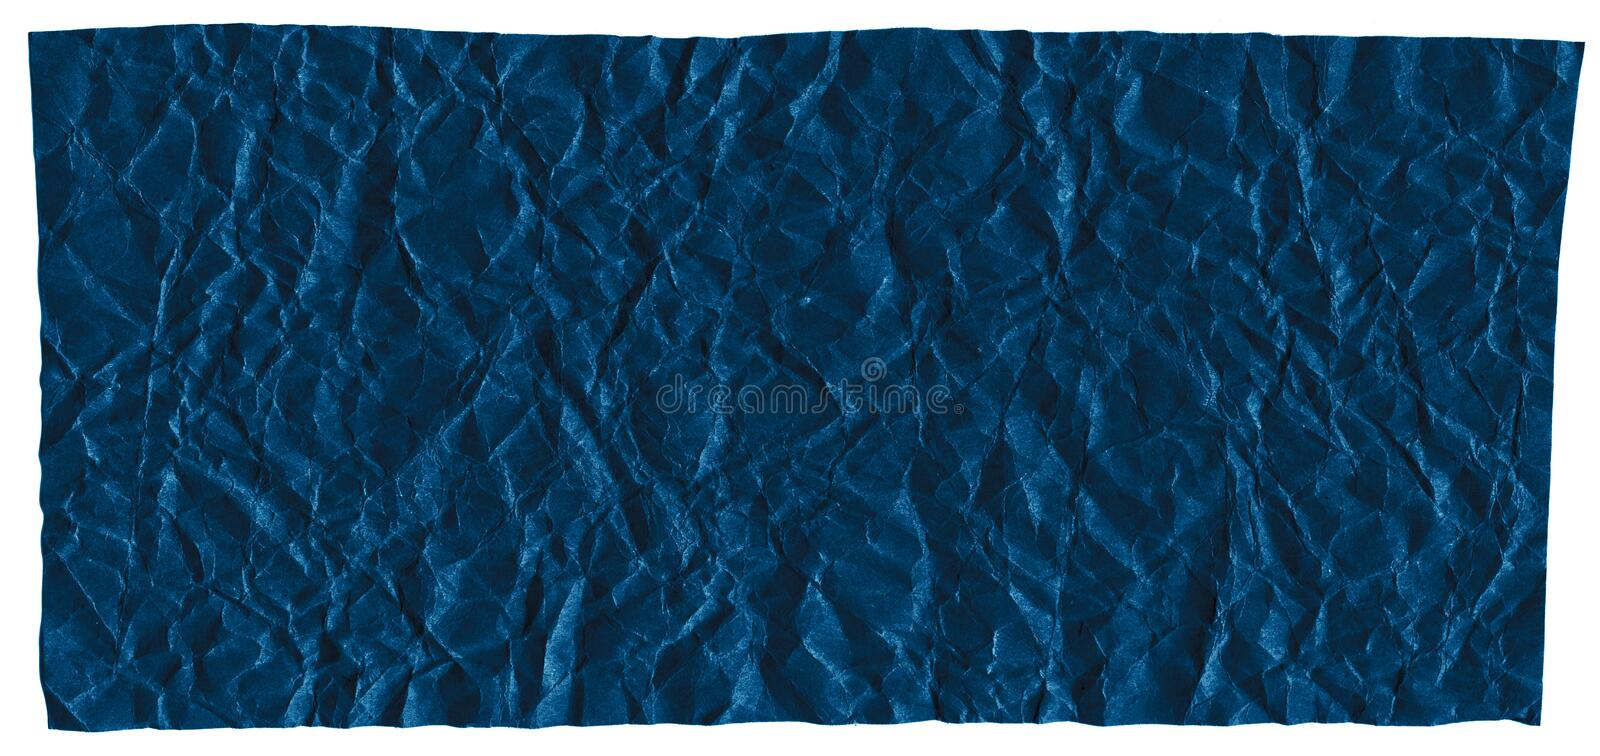 Ready frame for design, texture of crumpled craft paper, dark blue abstract background. Macro stock photos